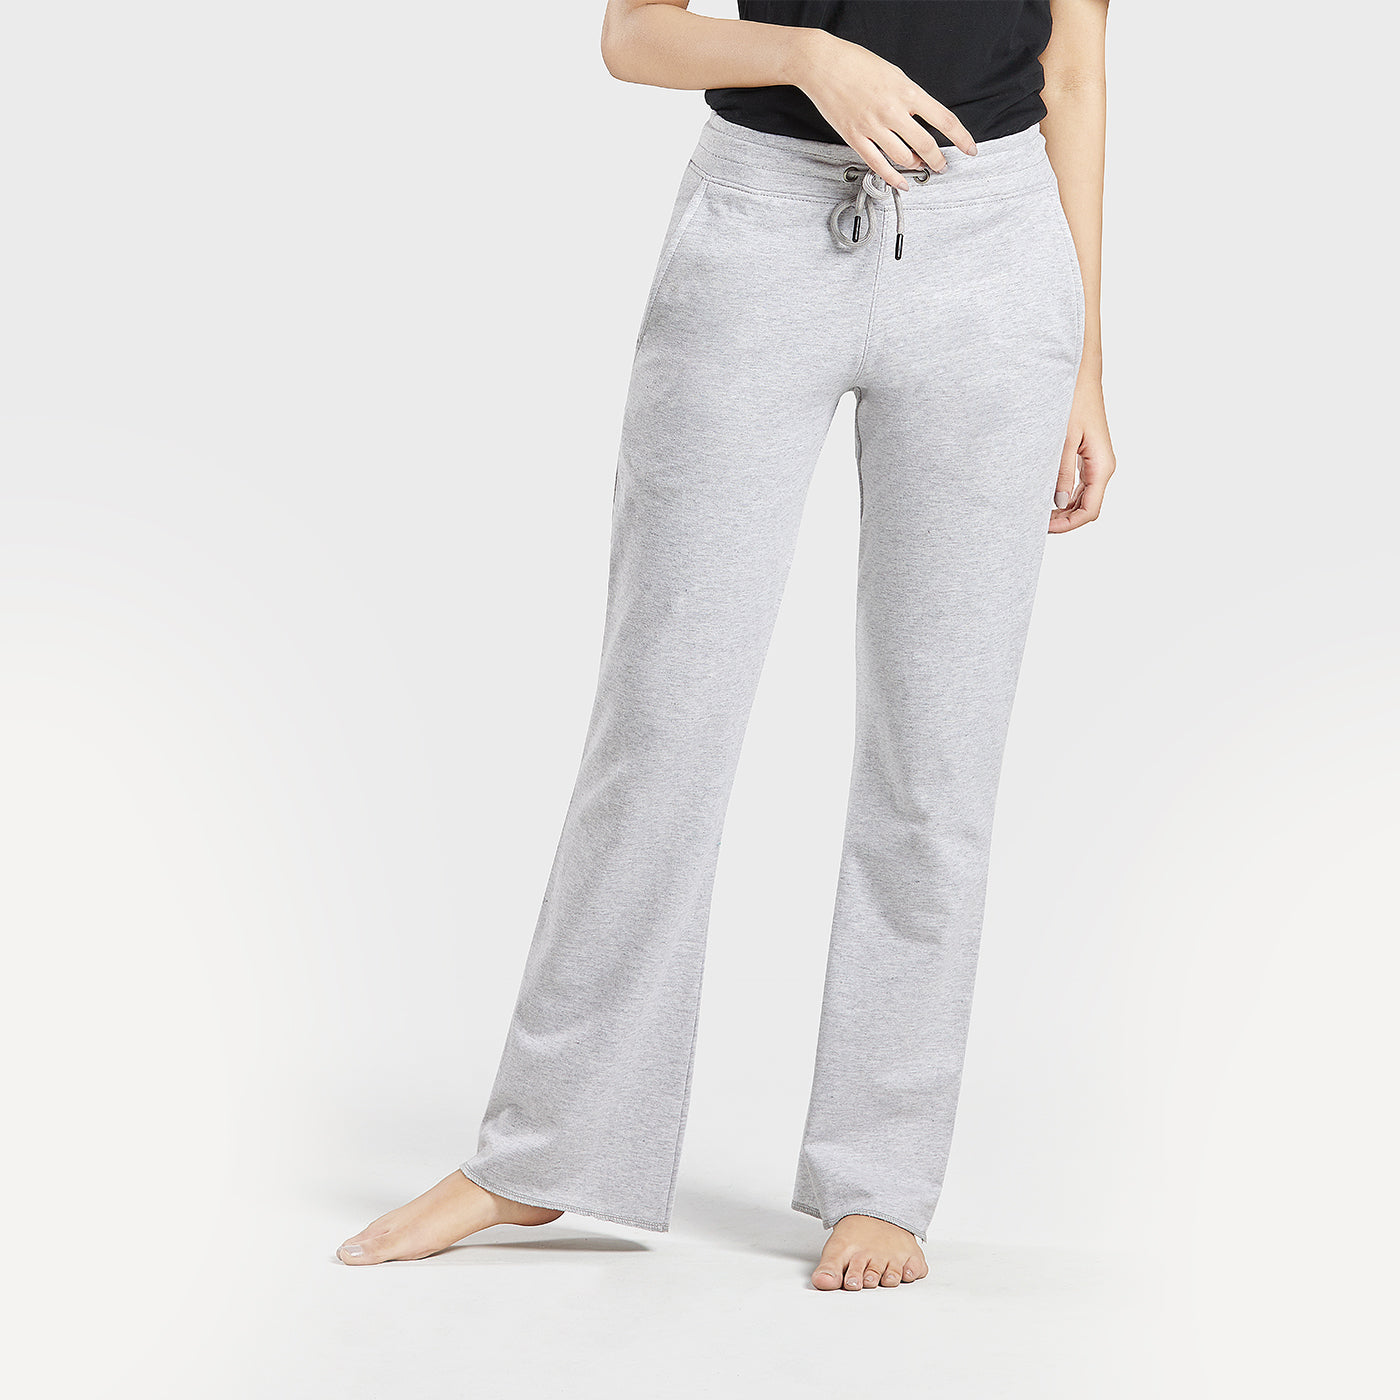 Wide Leg Women Trousers